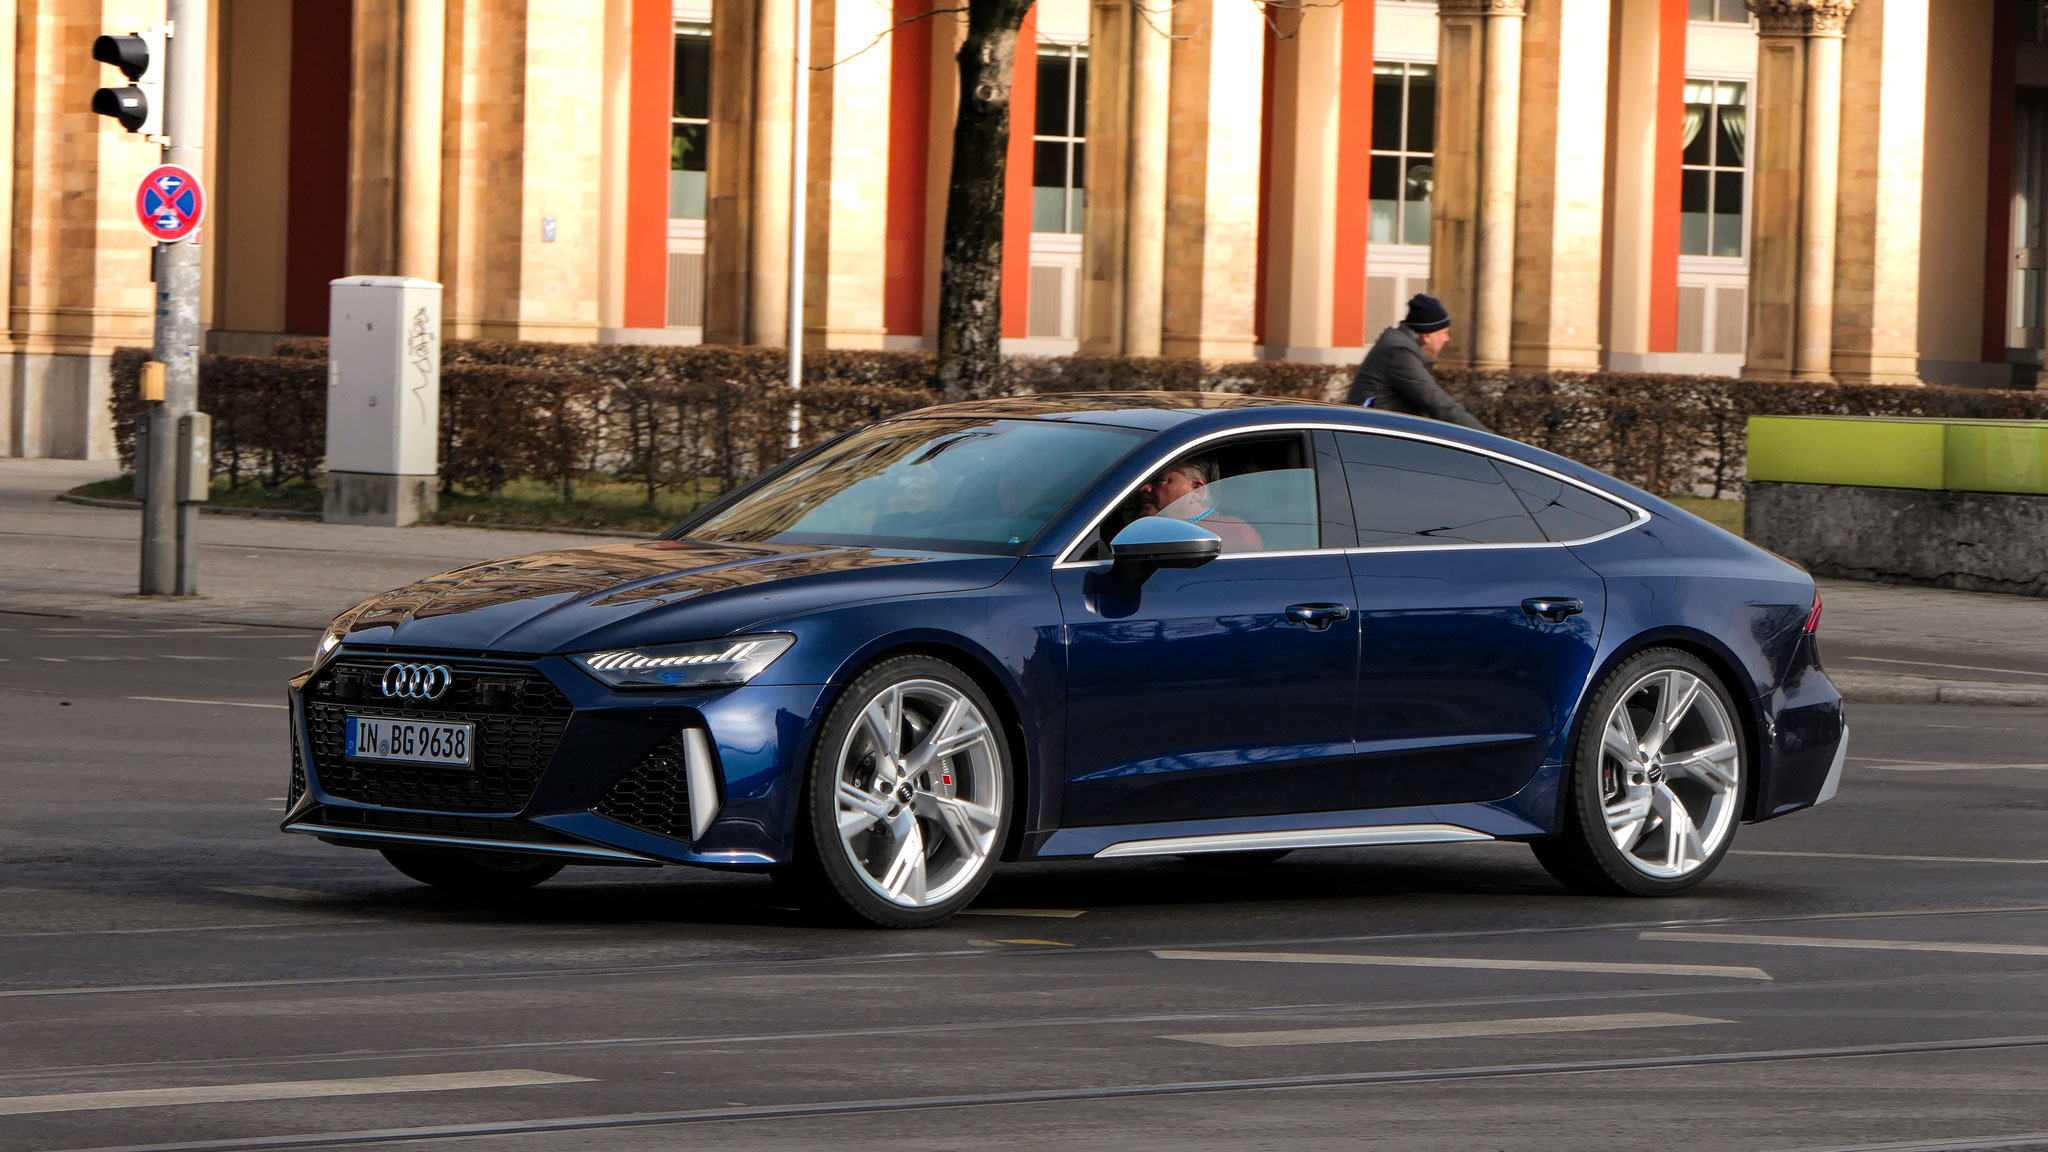 Audi RS7 - IN-BG-9638